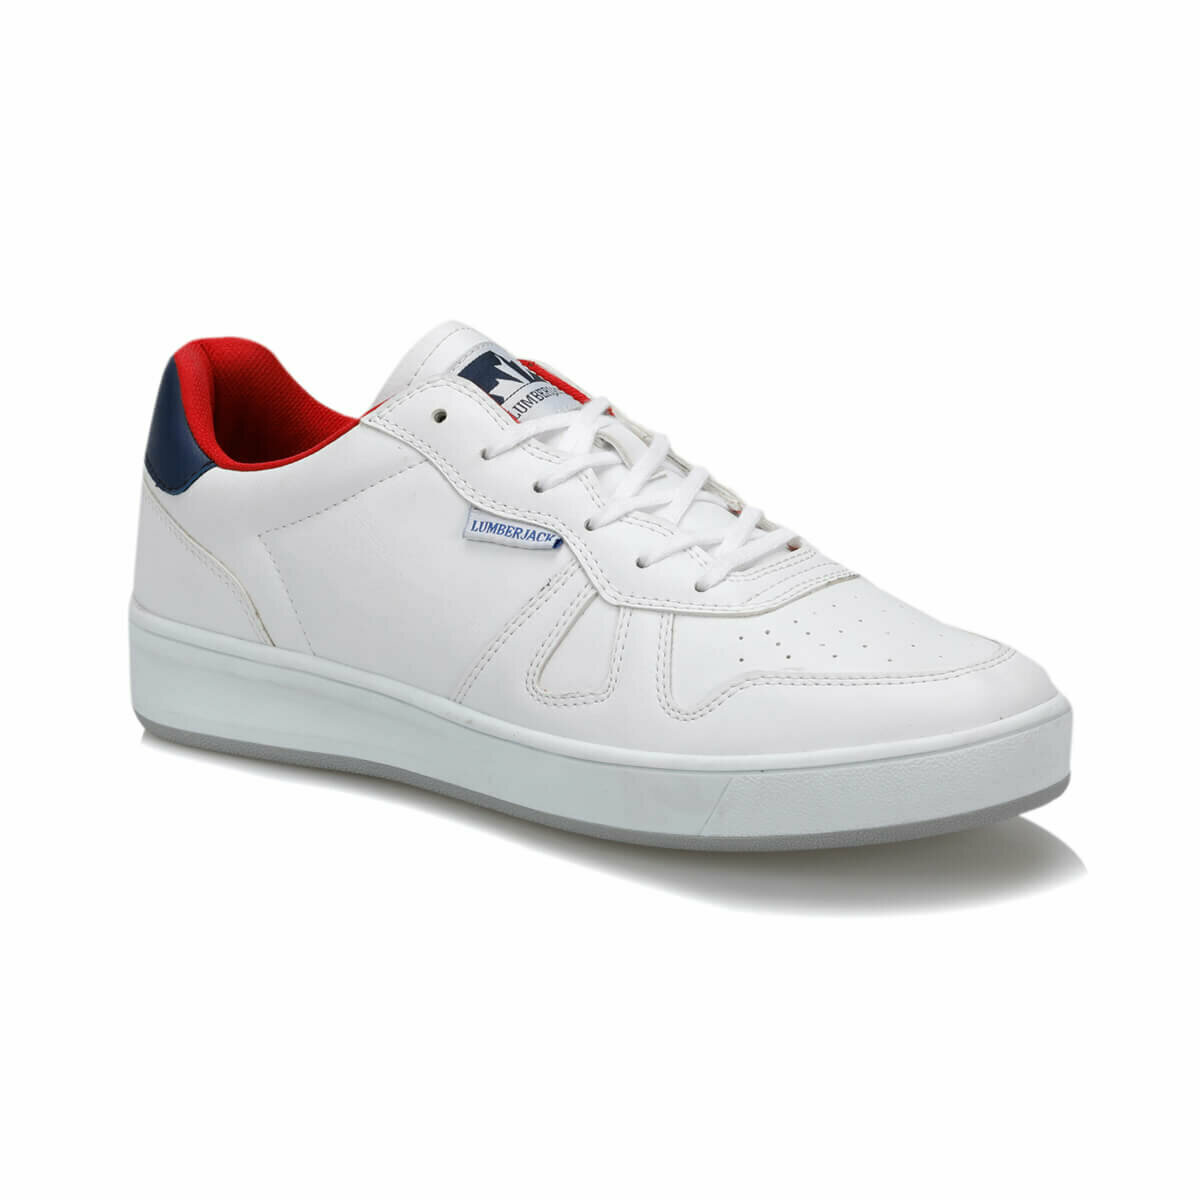 FLO HARBOUR White Men 'S Sneaker Shoes LUMBERJACK